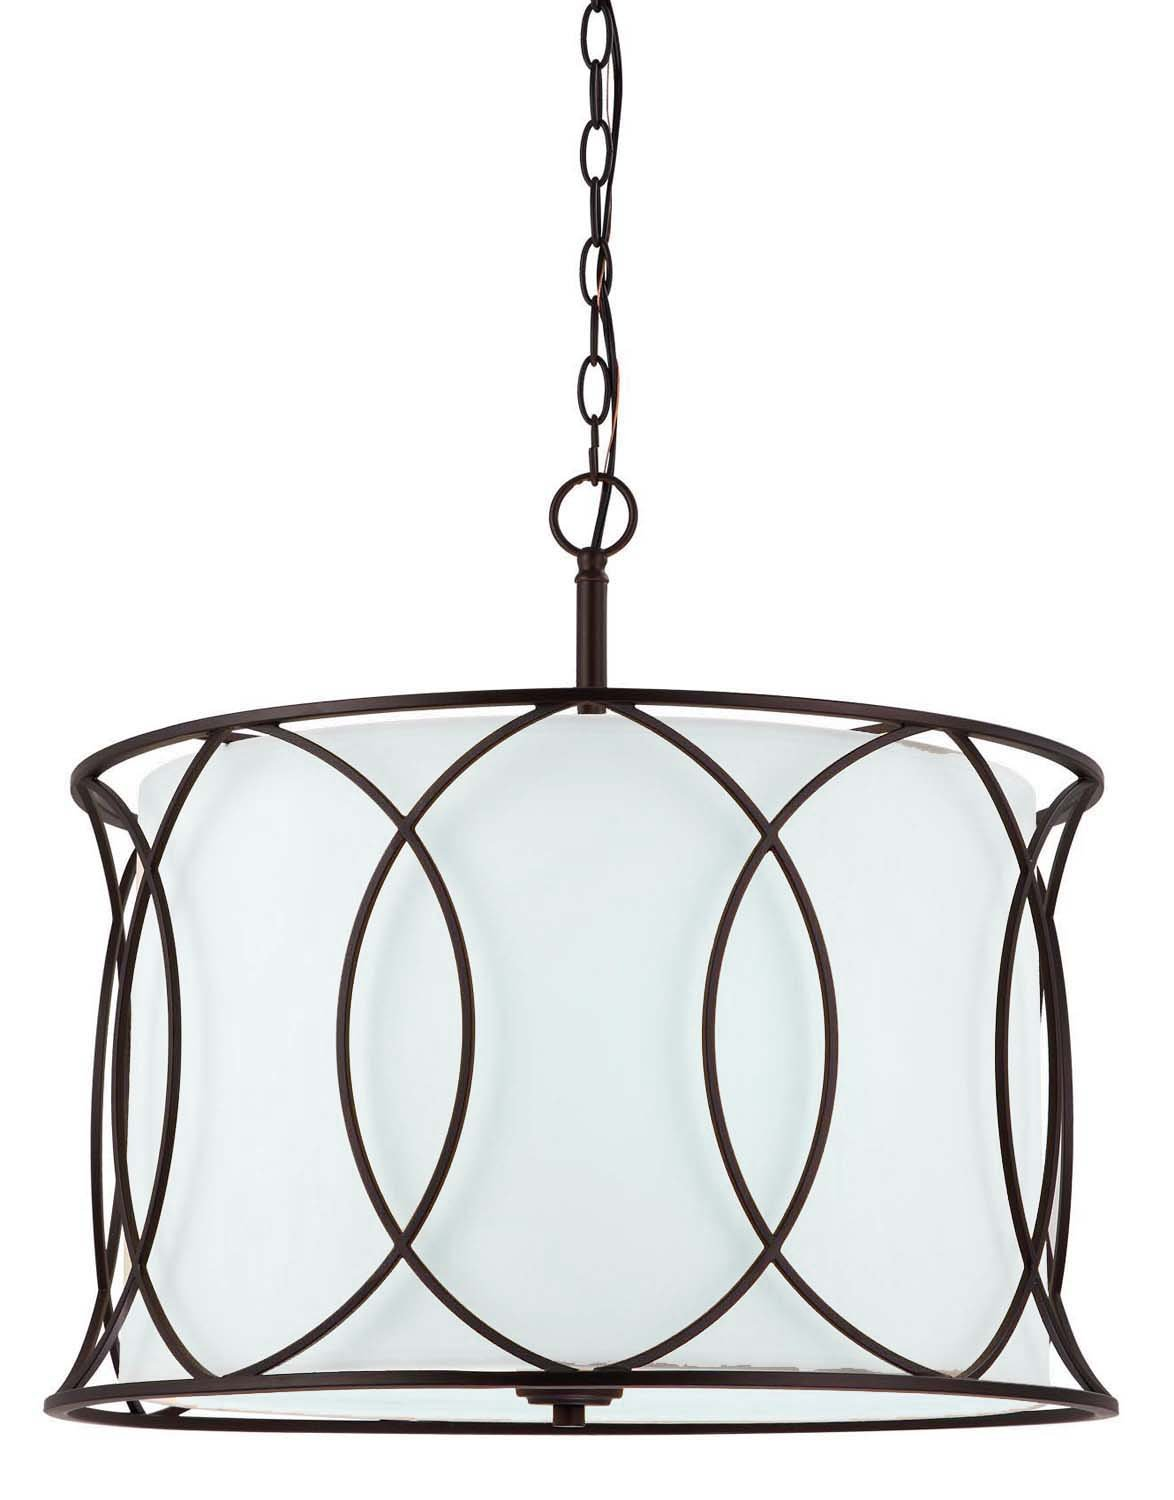 "Canarm ICH320A03ORB20 Monica 3-Light Chandelier, 20.5"" x 20.5"" x 17.5"", Oil Rubbed Bronze"